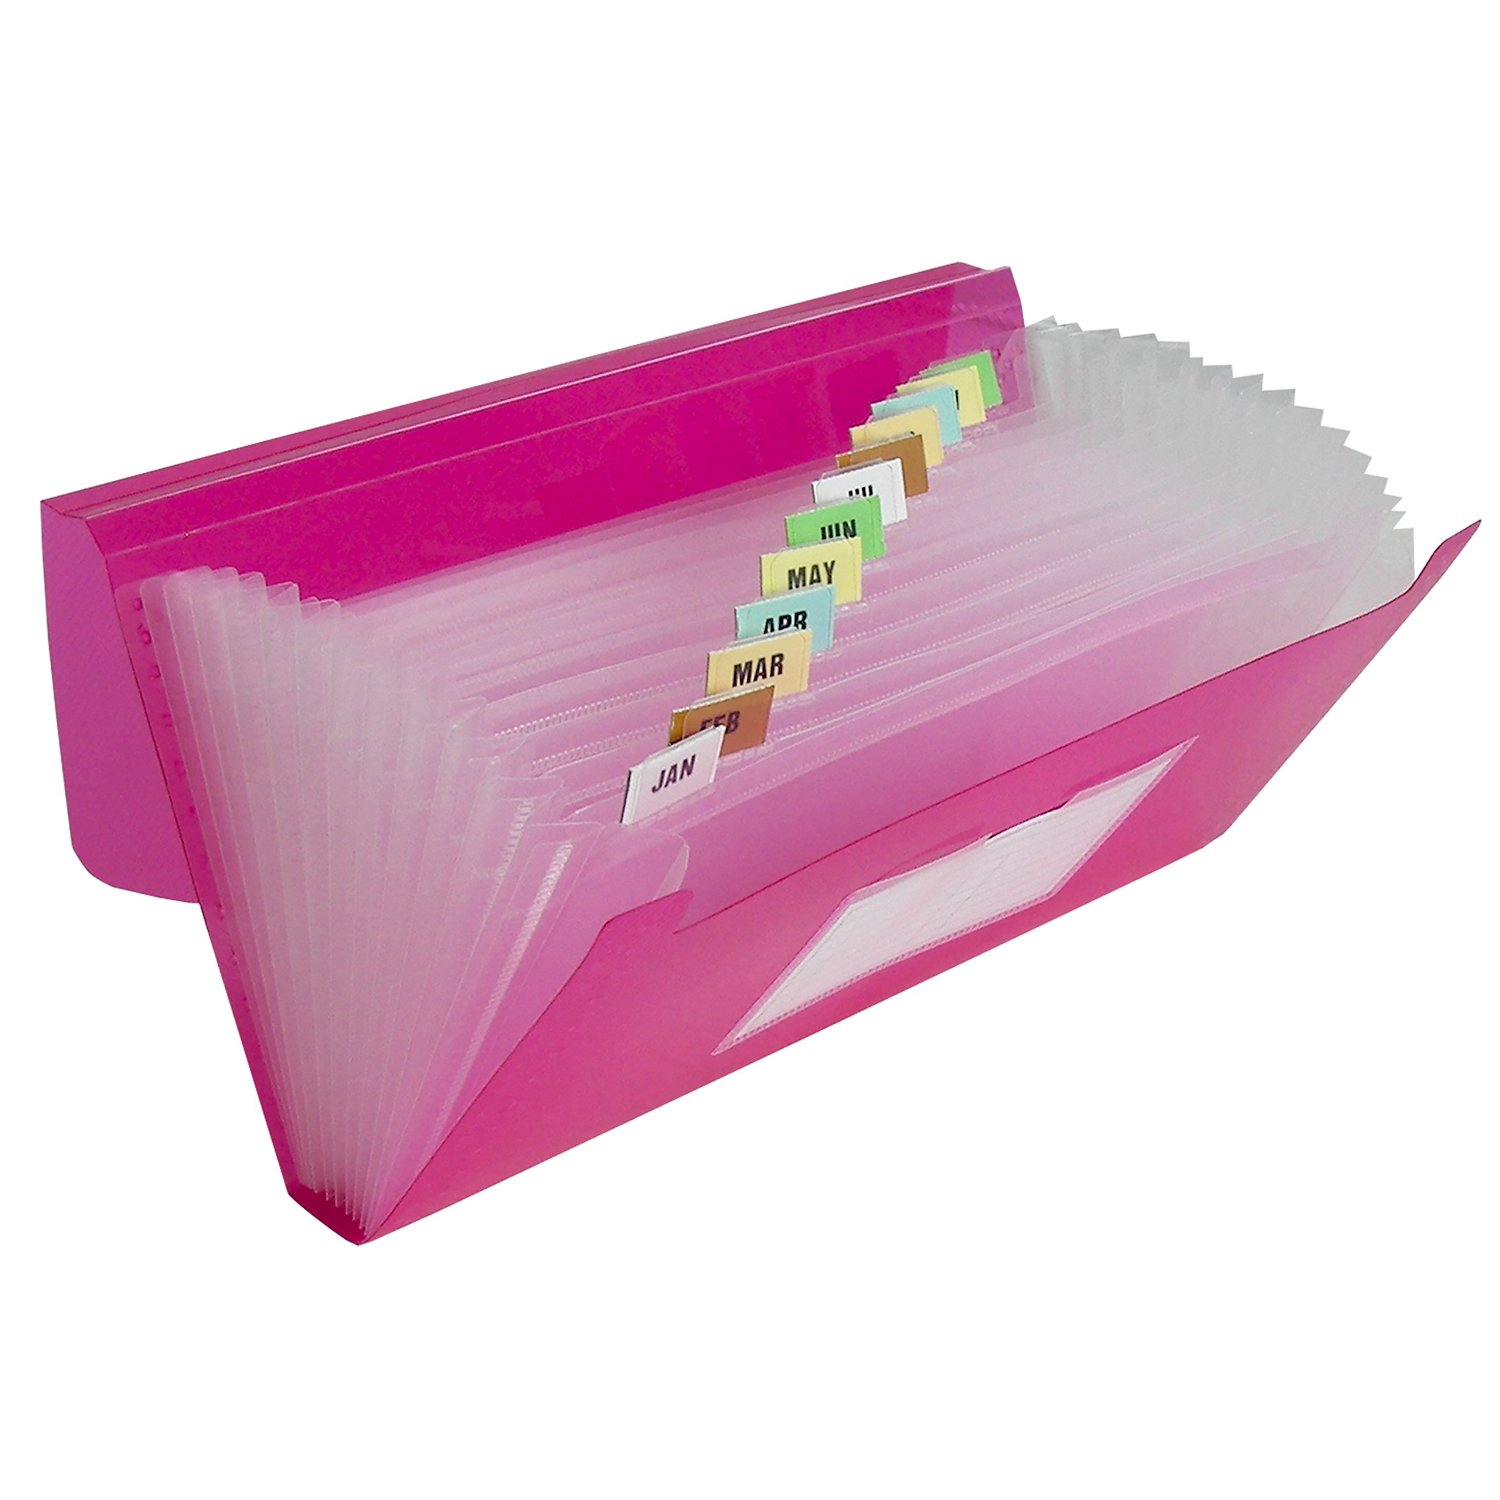 13-pocket Poly Expanding File (junior Size) $3.34